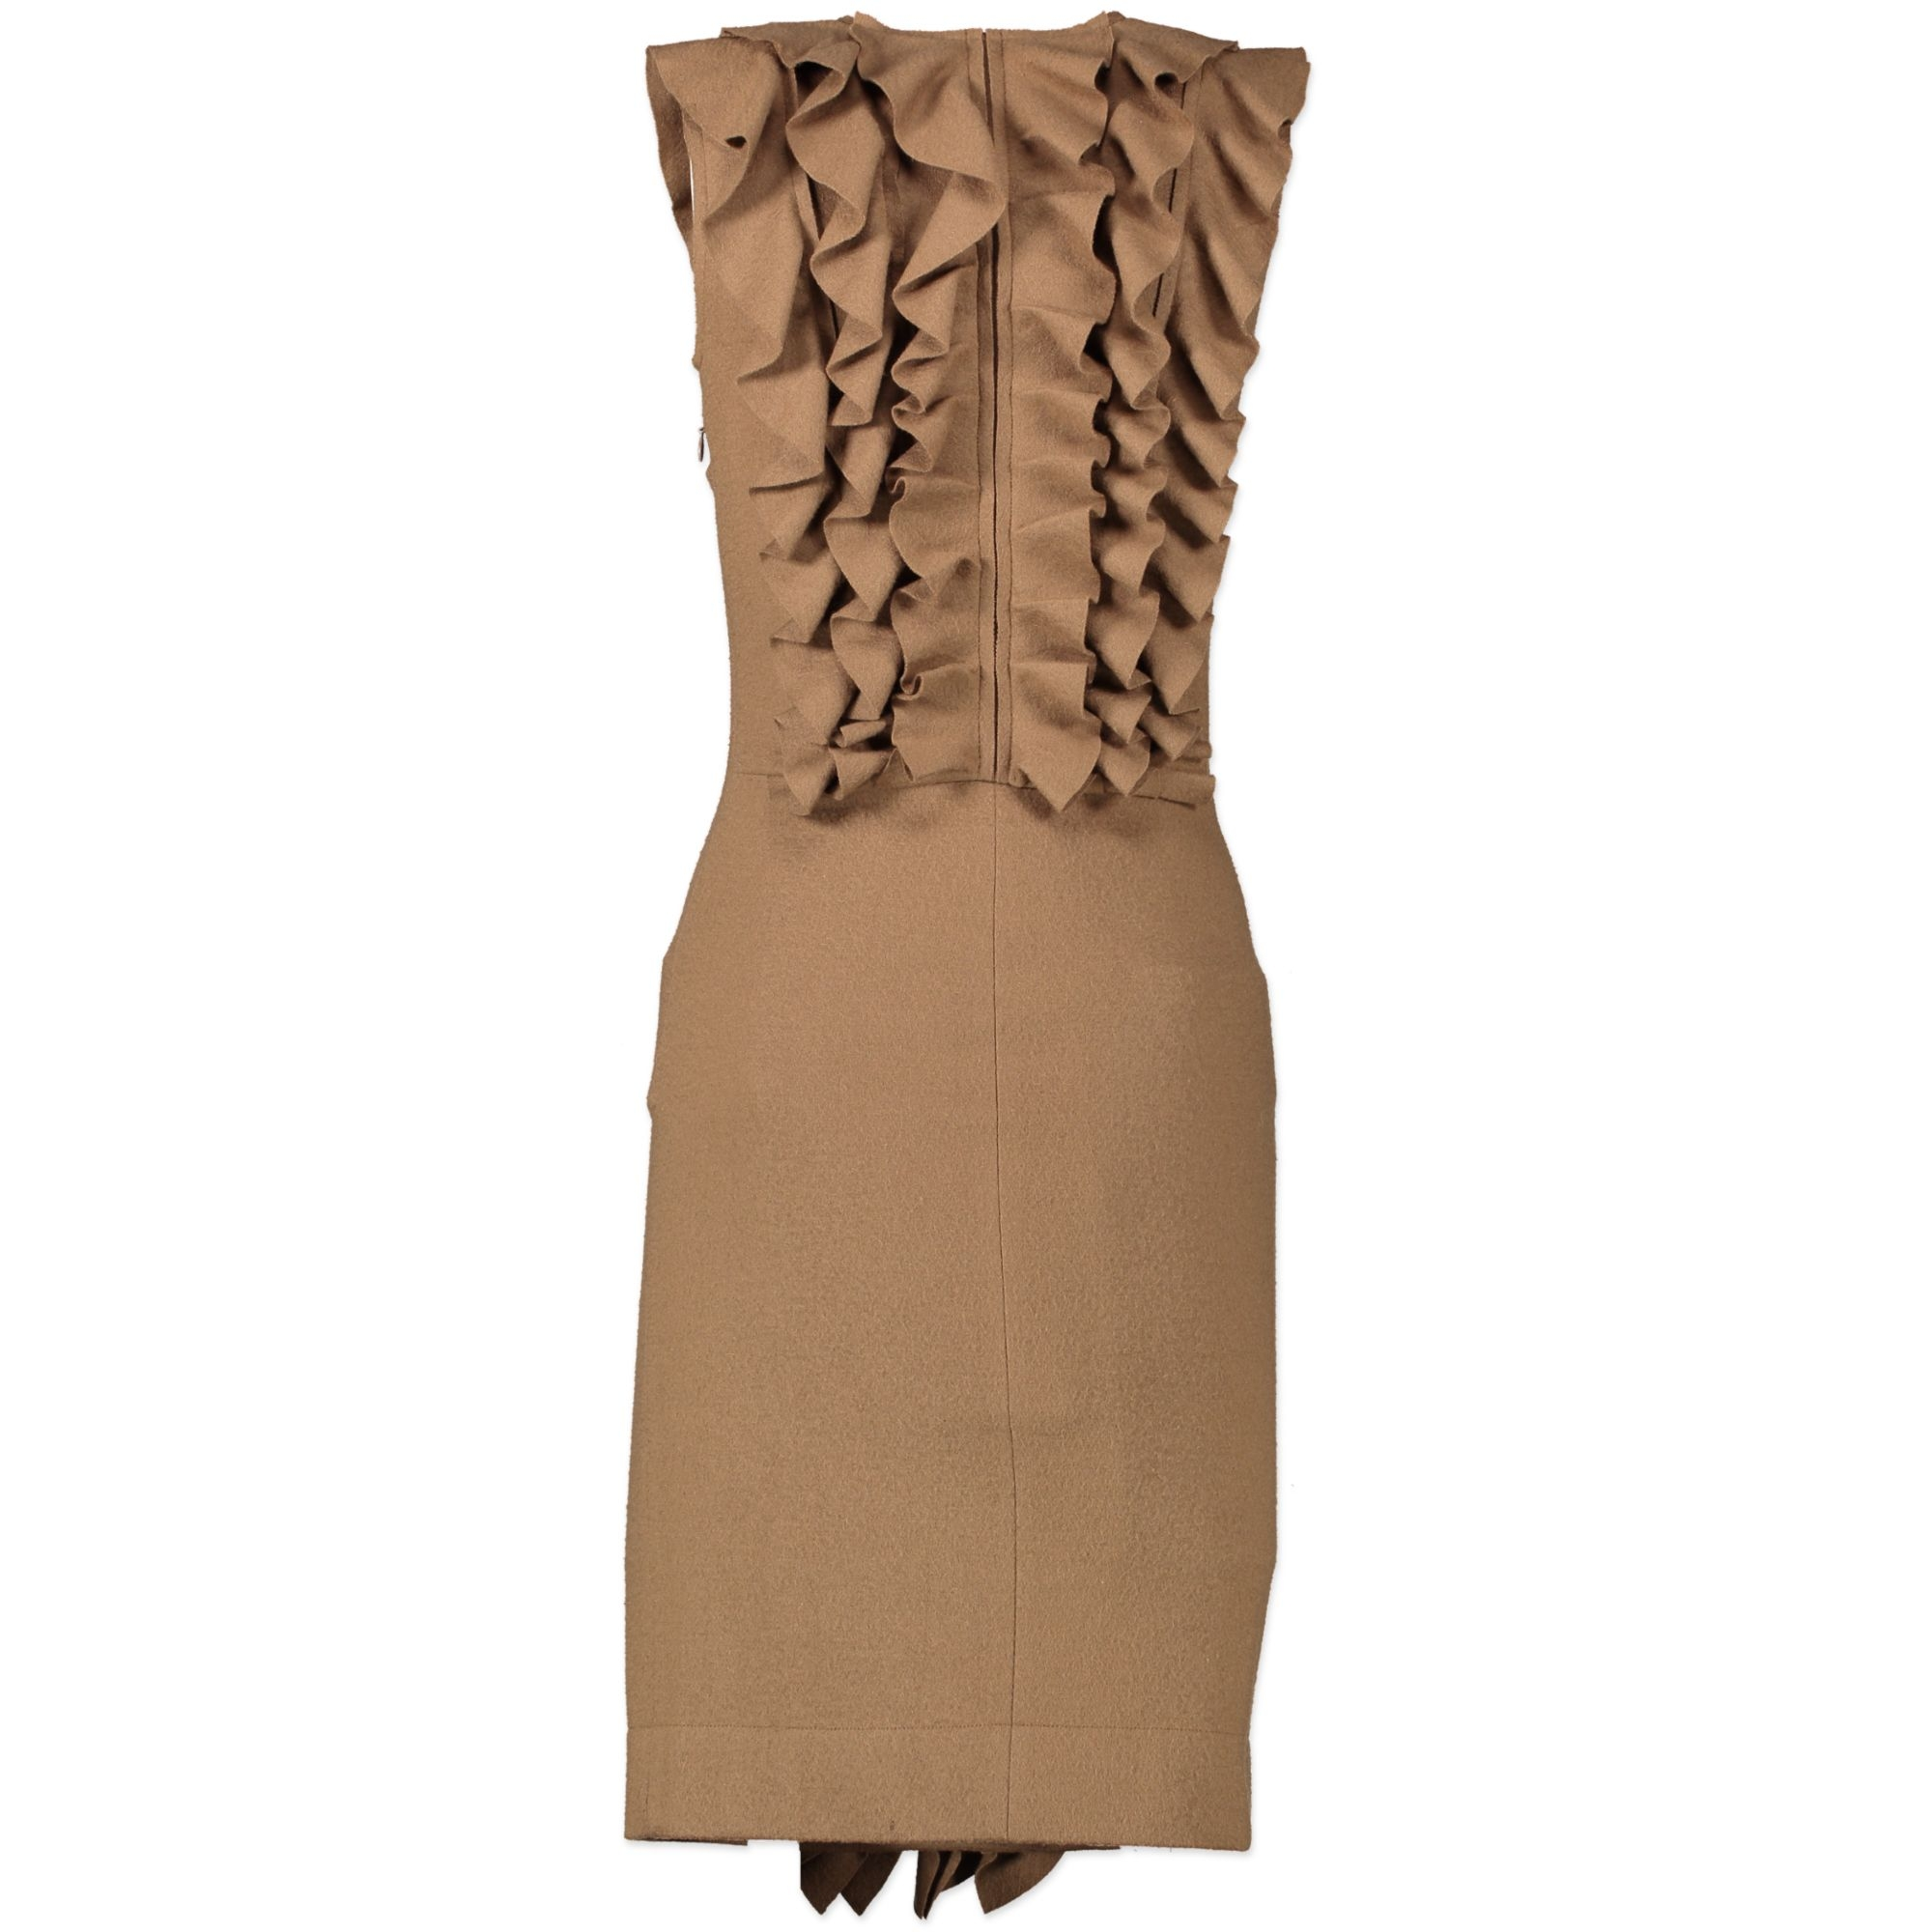 Fendi Tan Wool Ruffle Dress